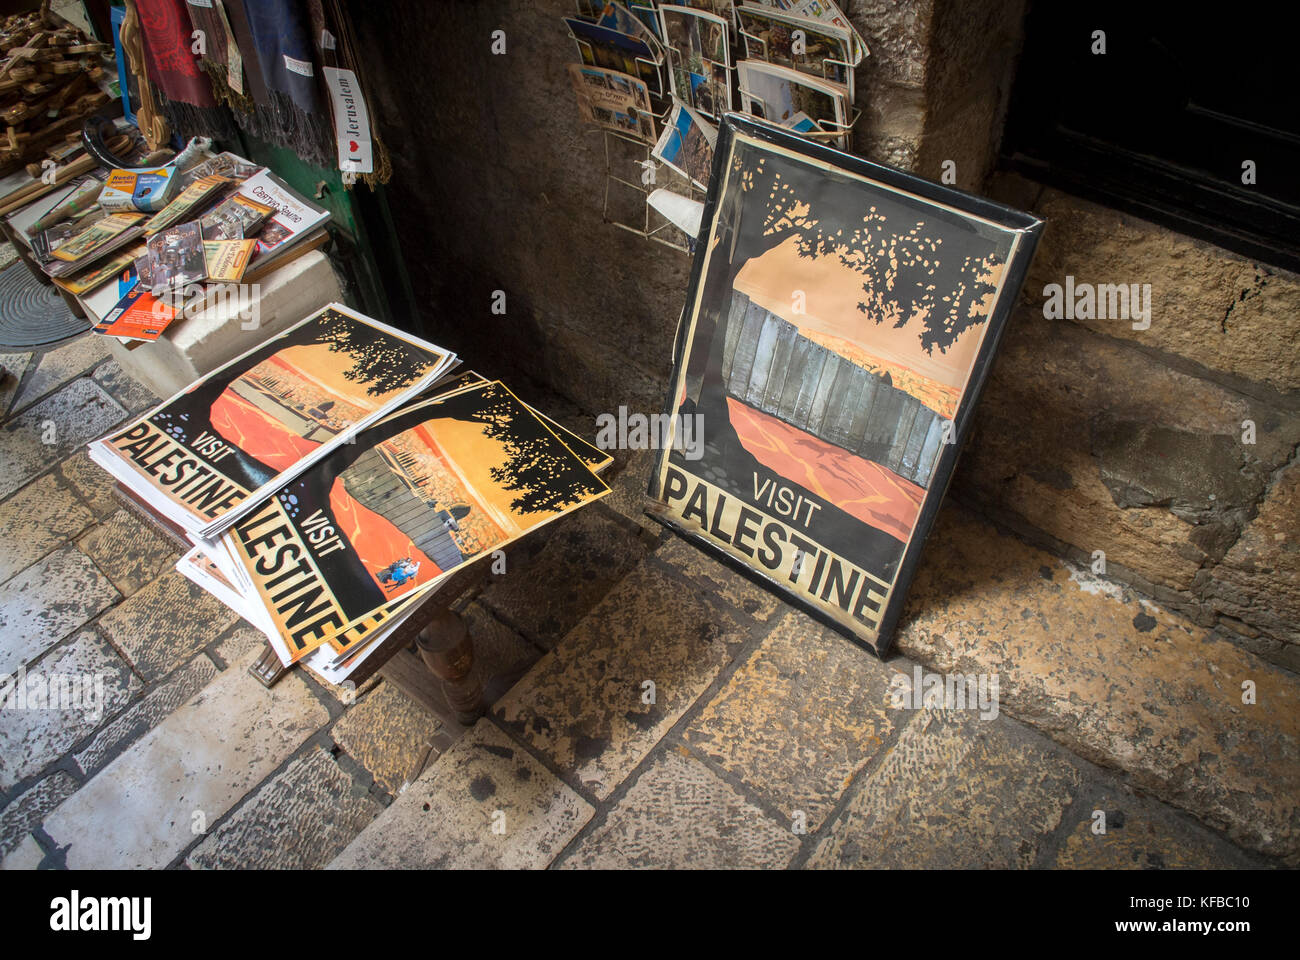 Posters of Palestine in the Muslim Quarter, Old City, Jerusalem. - Stock Image